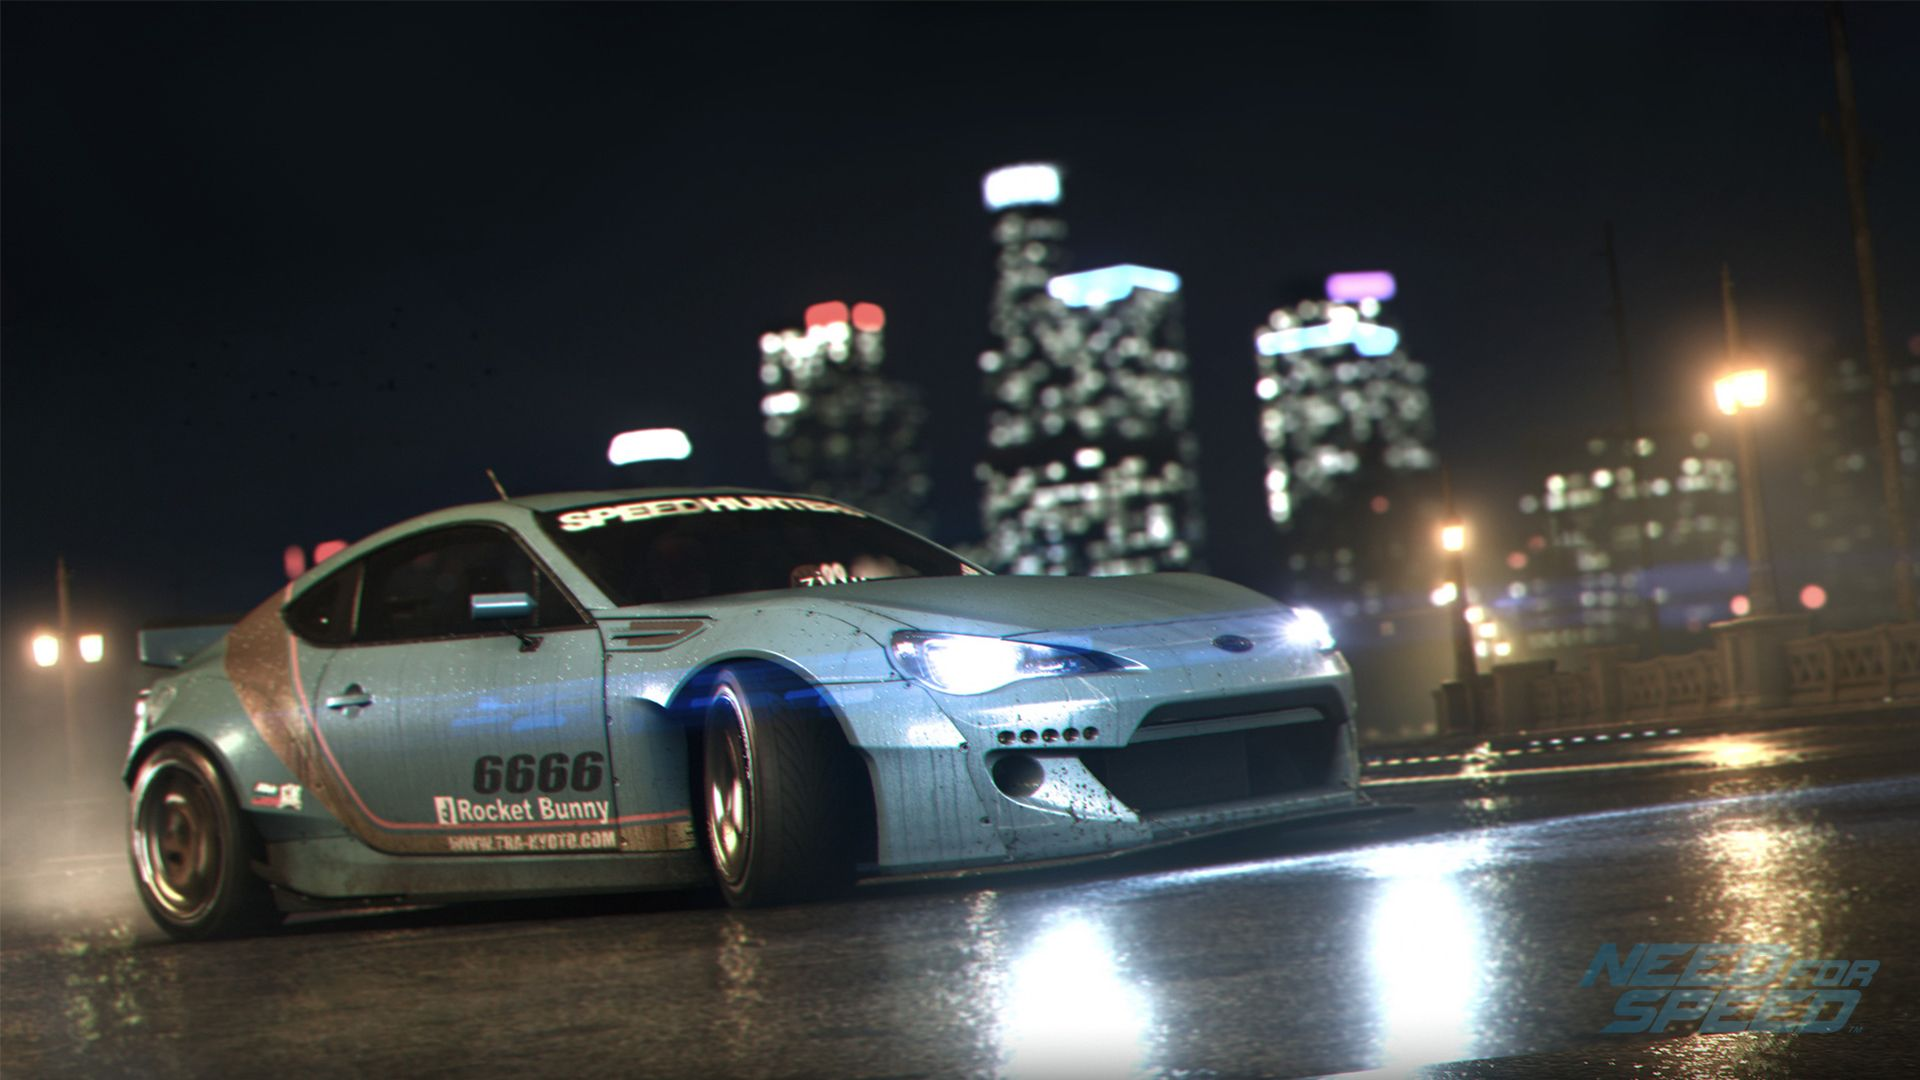 The New Need For Speed Wants To Make Tinkering And Tuning Fun Everyone